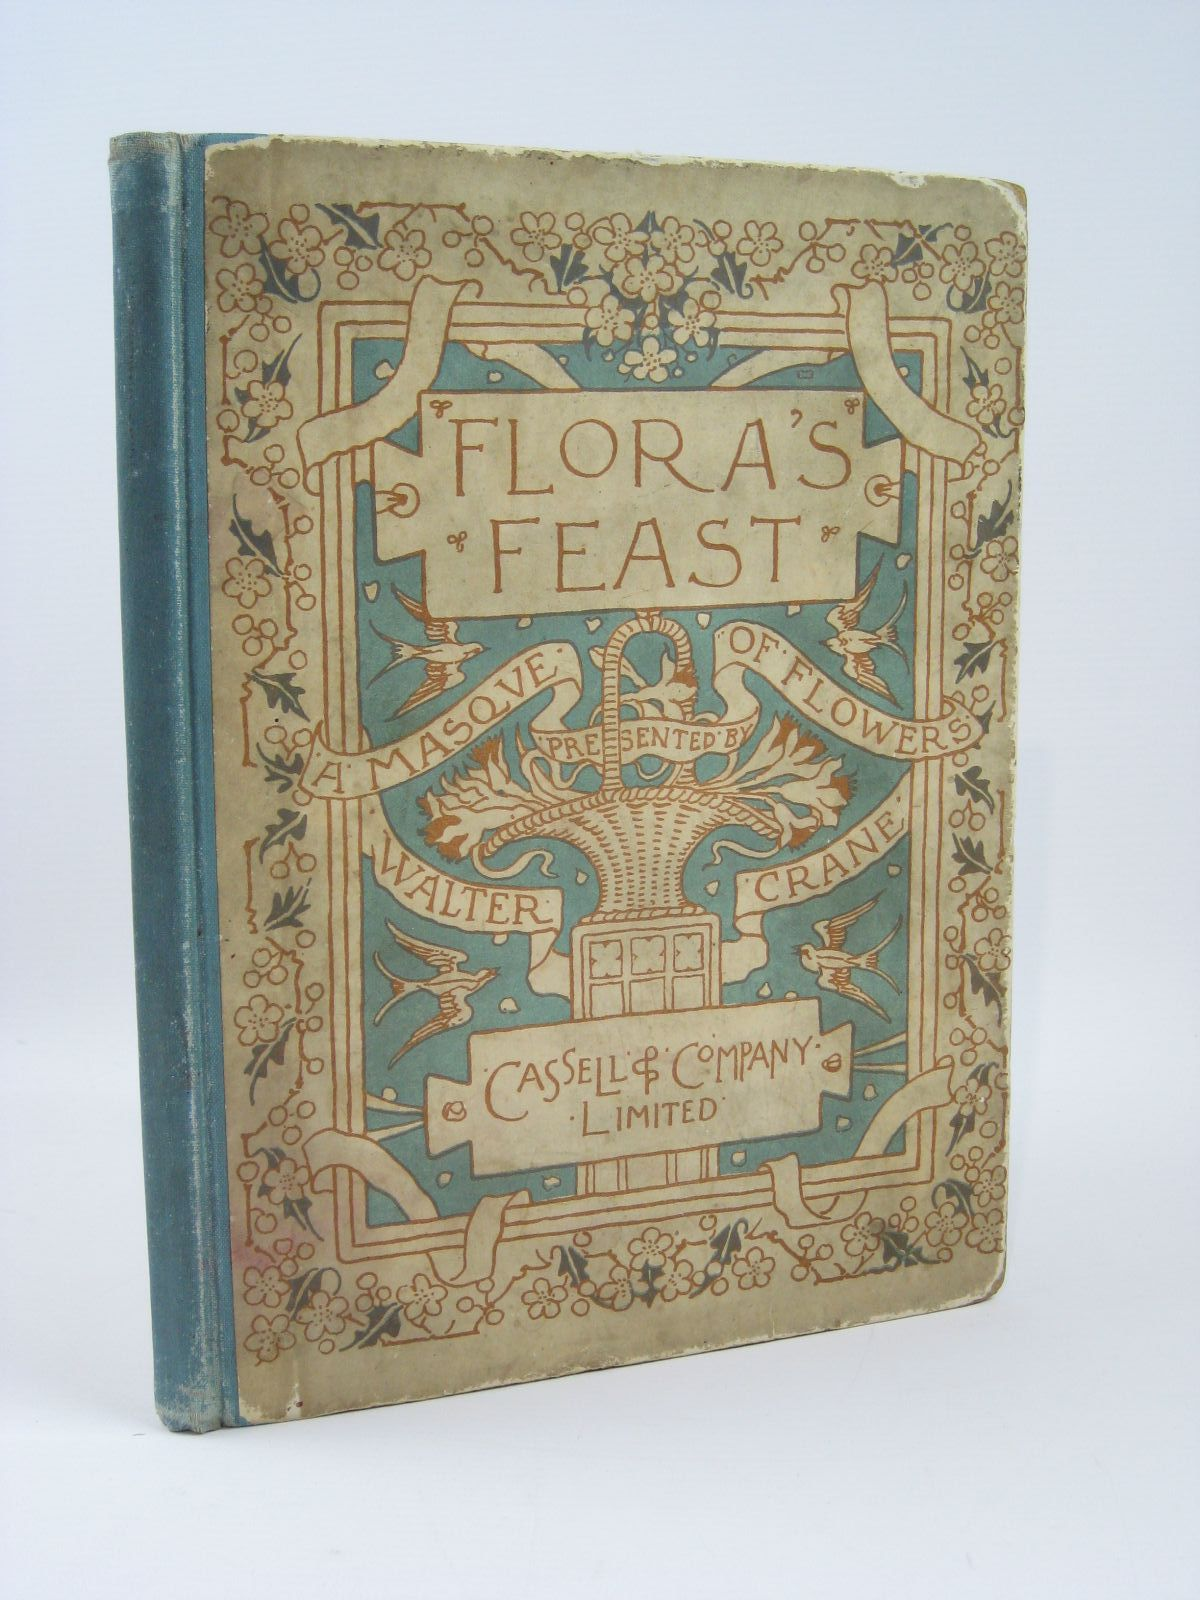 Photo of FLORA'S FEAST A MASQUE OF FLOWERS written by Crane, Walter illustrated by Crane, Walter published by Cassell & Company Limited (STOCK CODE: 1506741)  for sale by Stella & Rose's Books